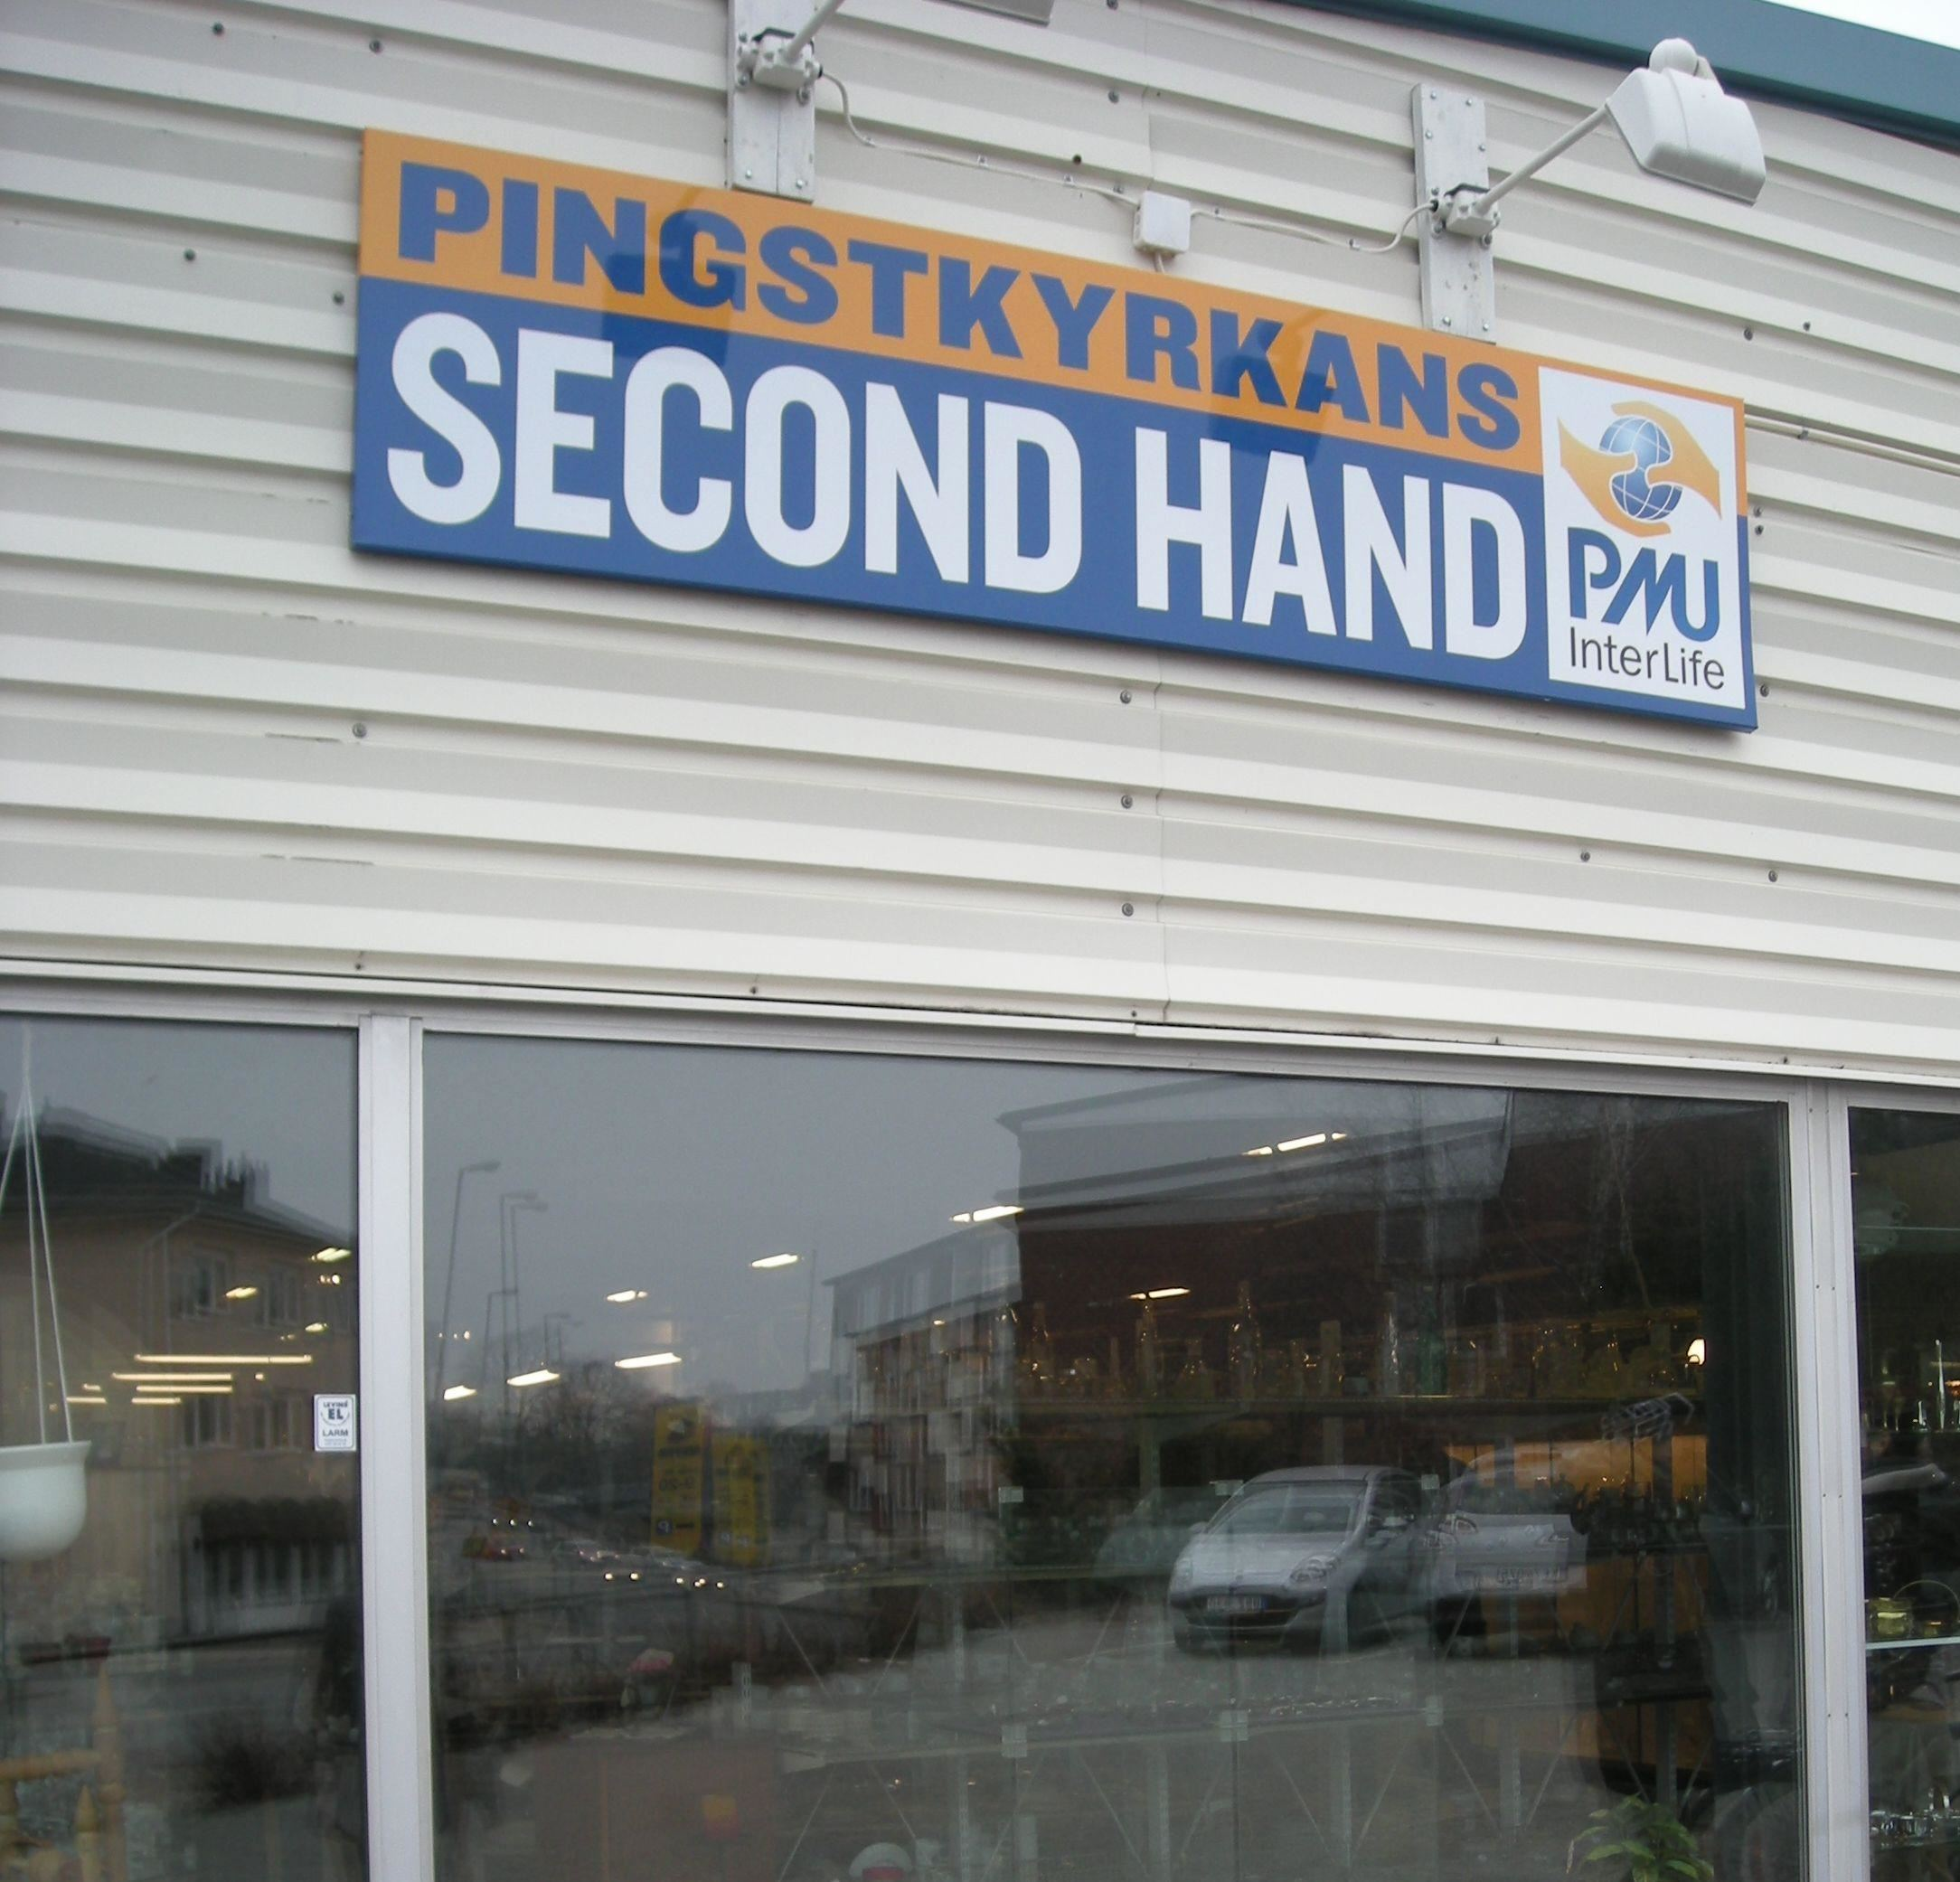 Pingstkyrkans secondhand